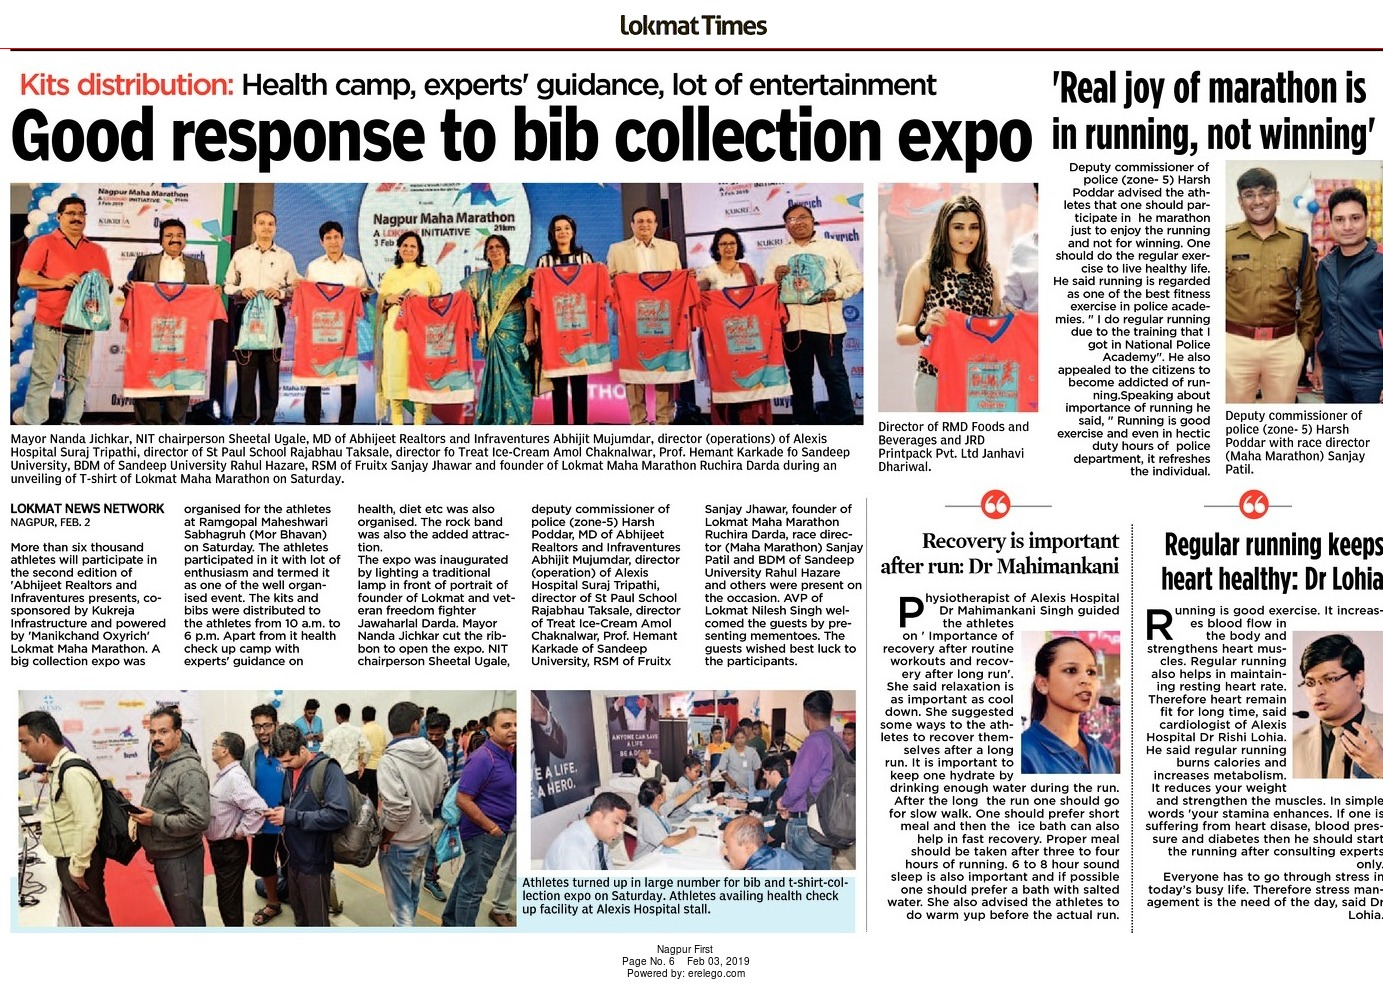 Good response to bib collection expo